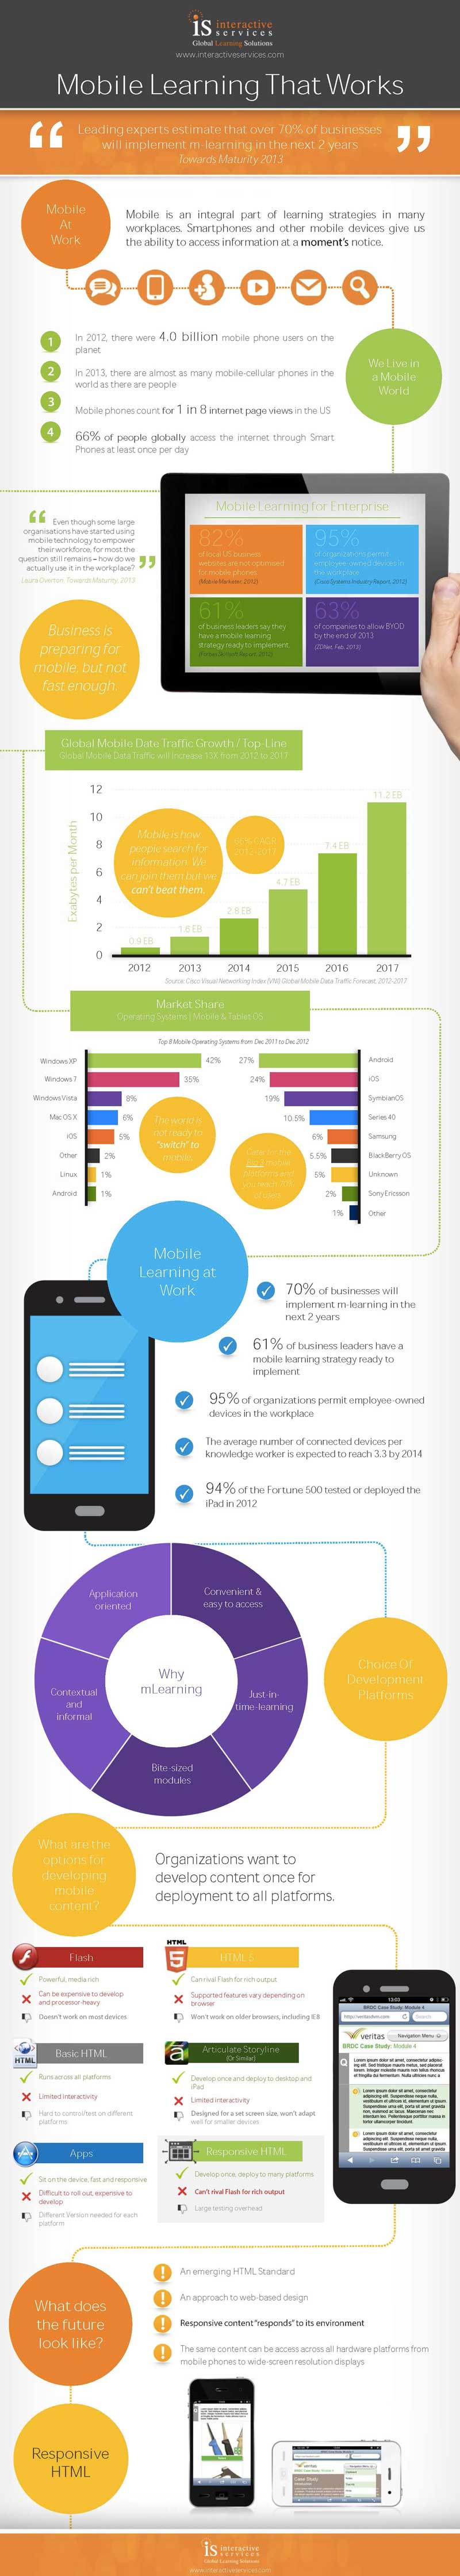 click for infographic on mlearning